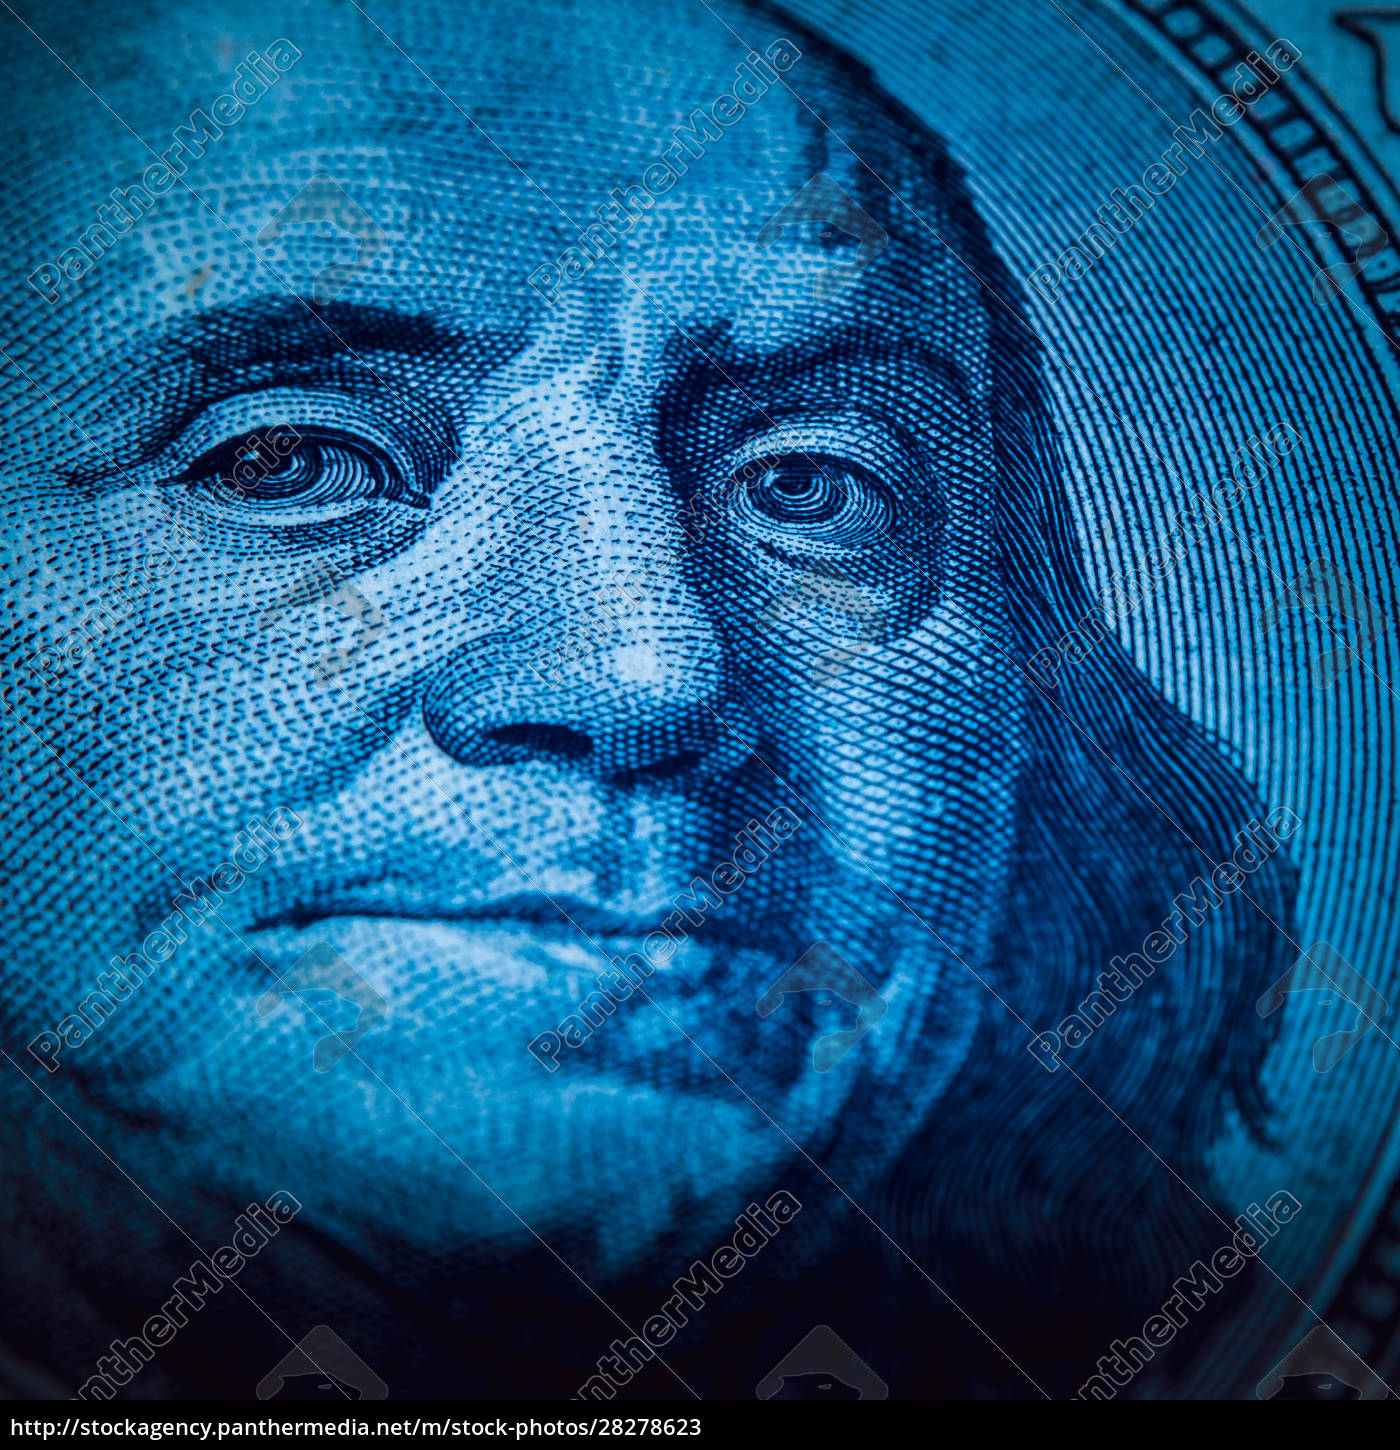 a, portrait, of, president, franklin, on - 28278623